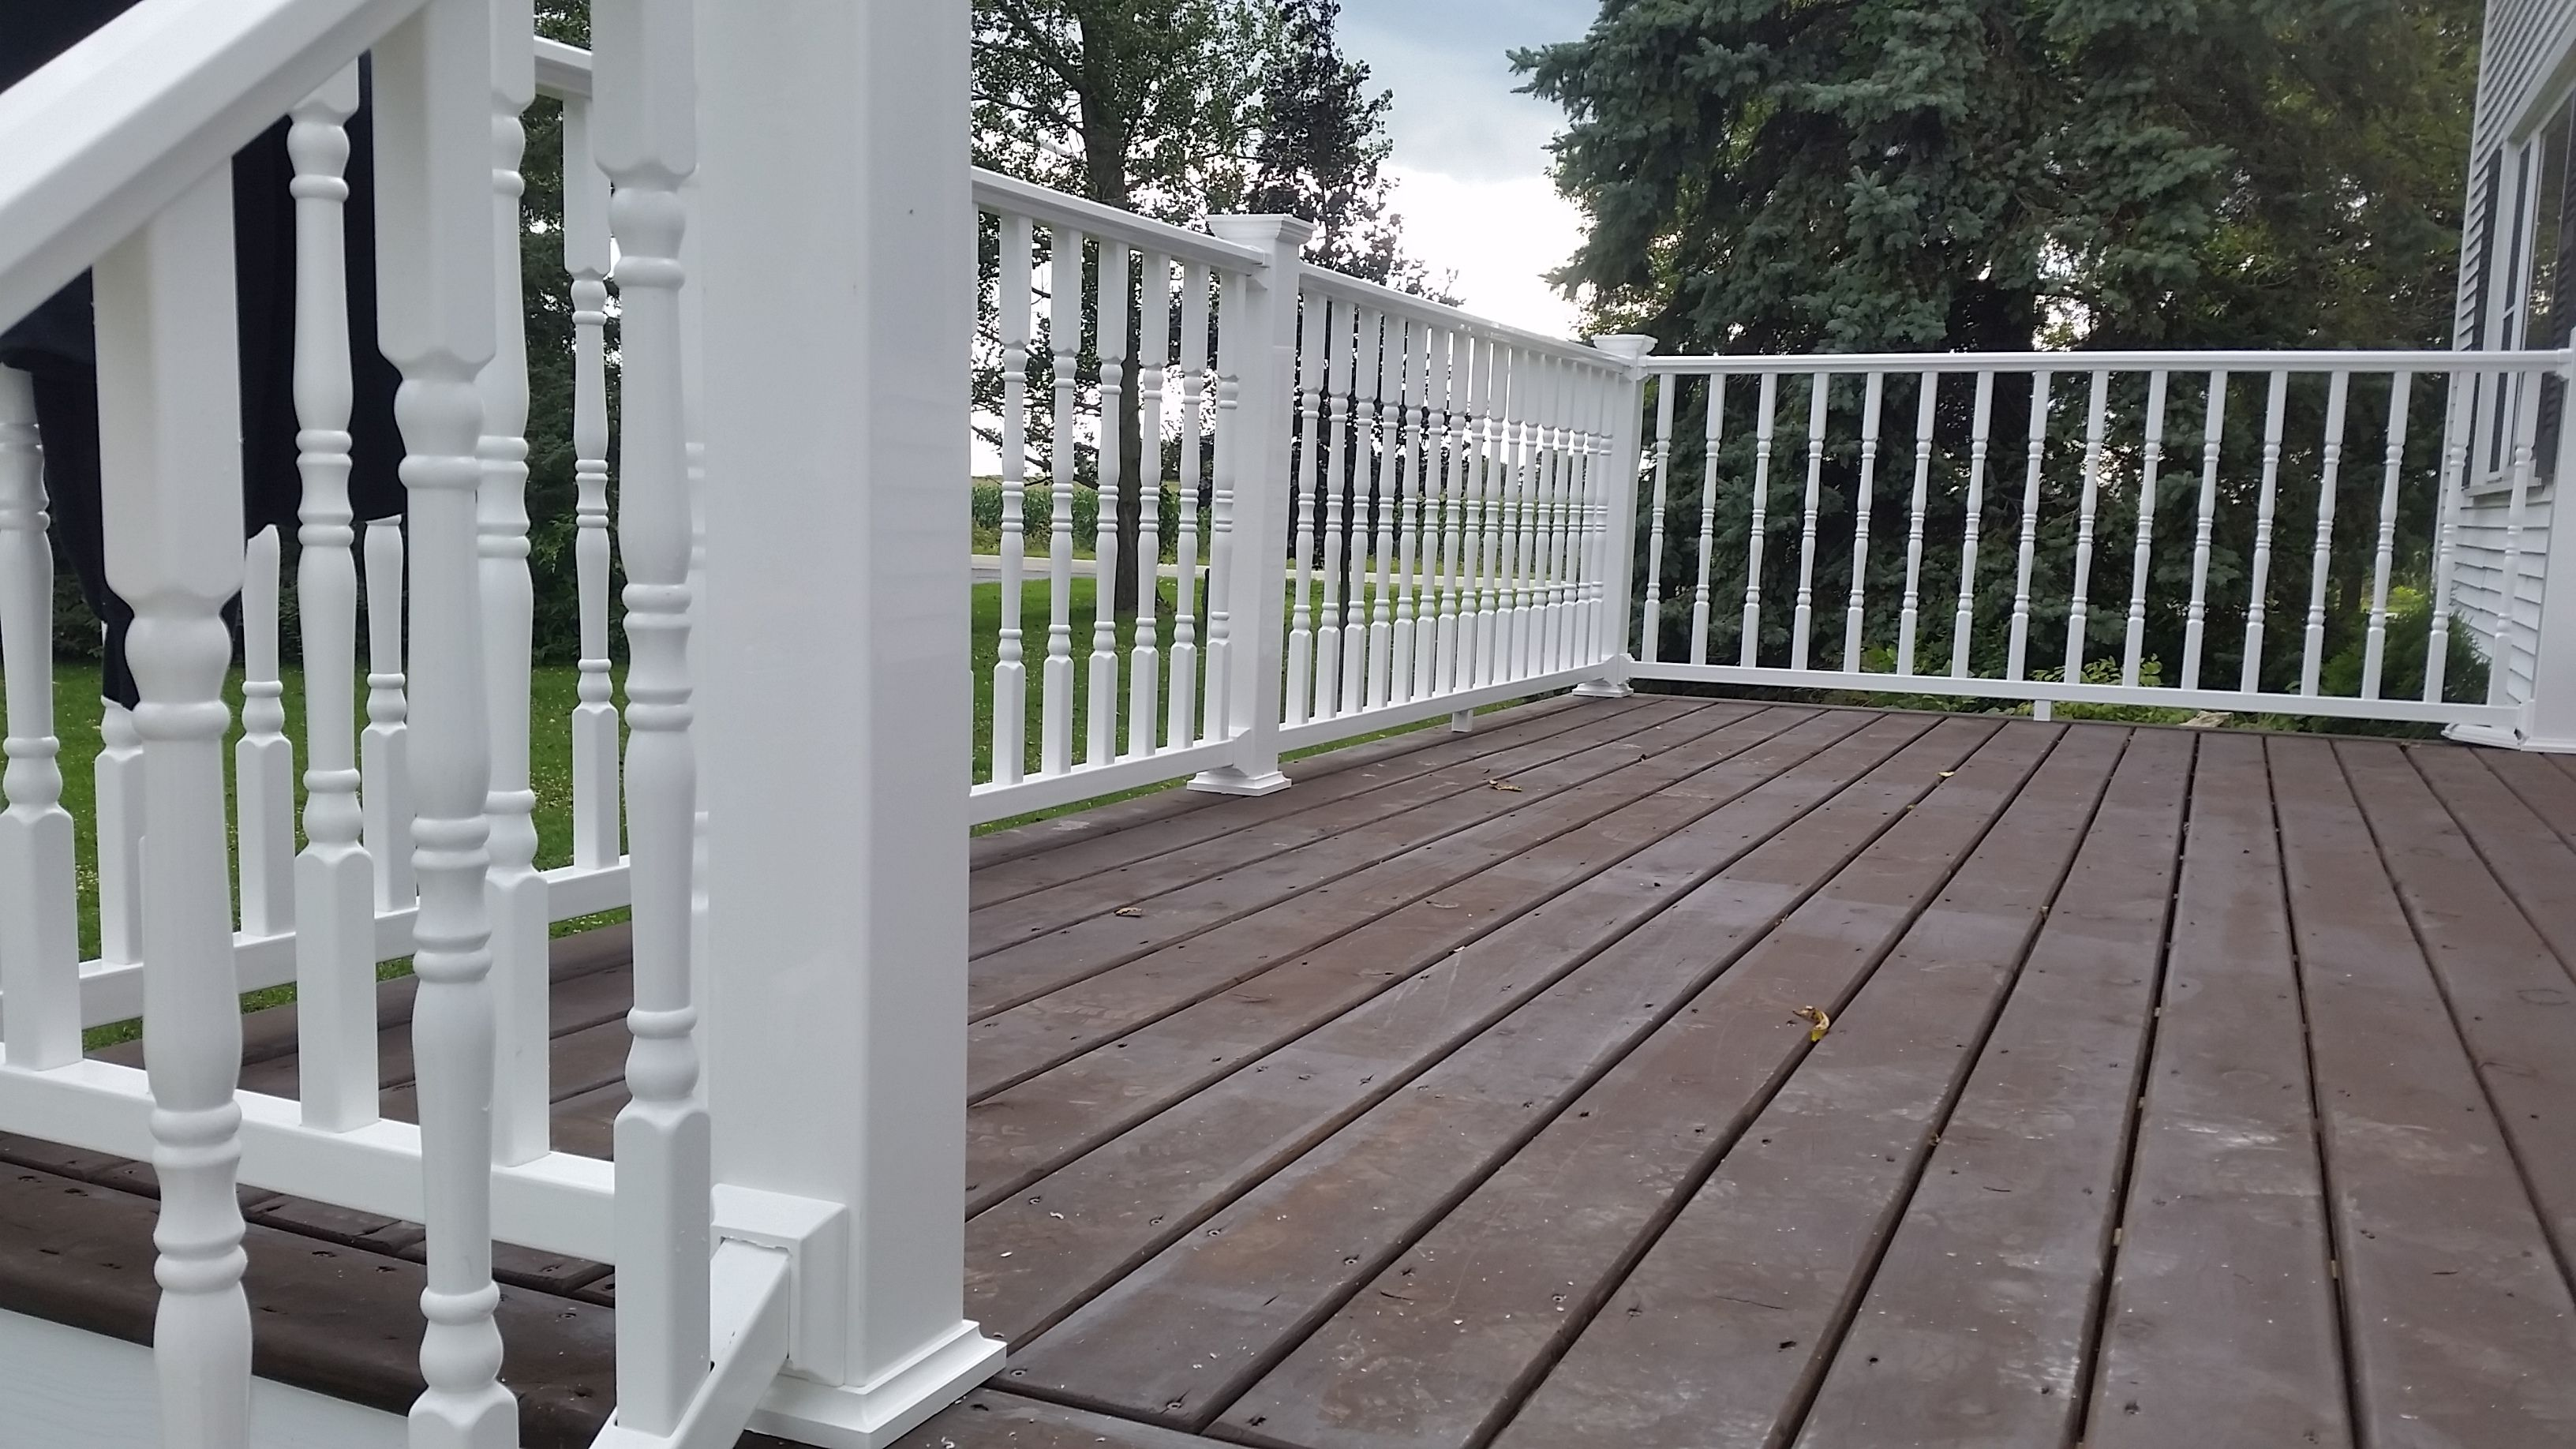 Trx White Vinyl Railing With Colonial Balusters And A Treated Pine Decking With Zar Acorn Brown Deck Siding Stain Outdoor Rooms Cottage Garden Outdoor Living